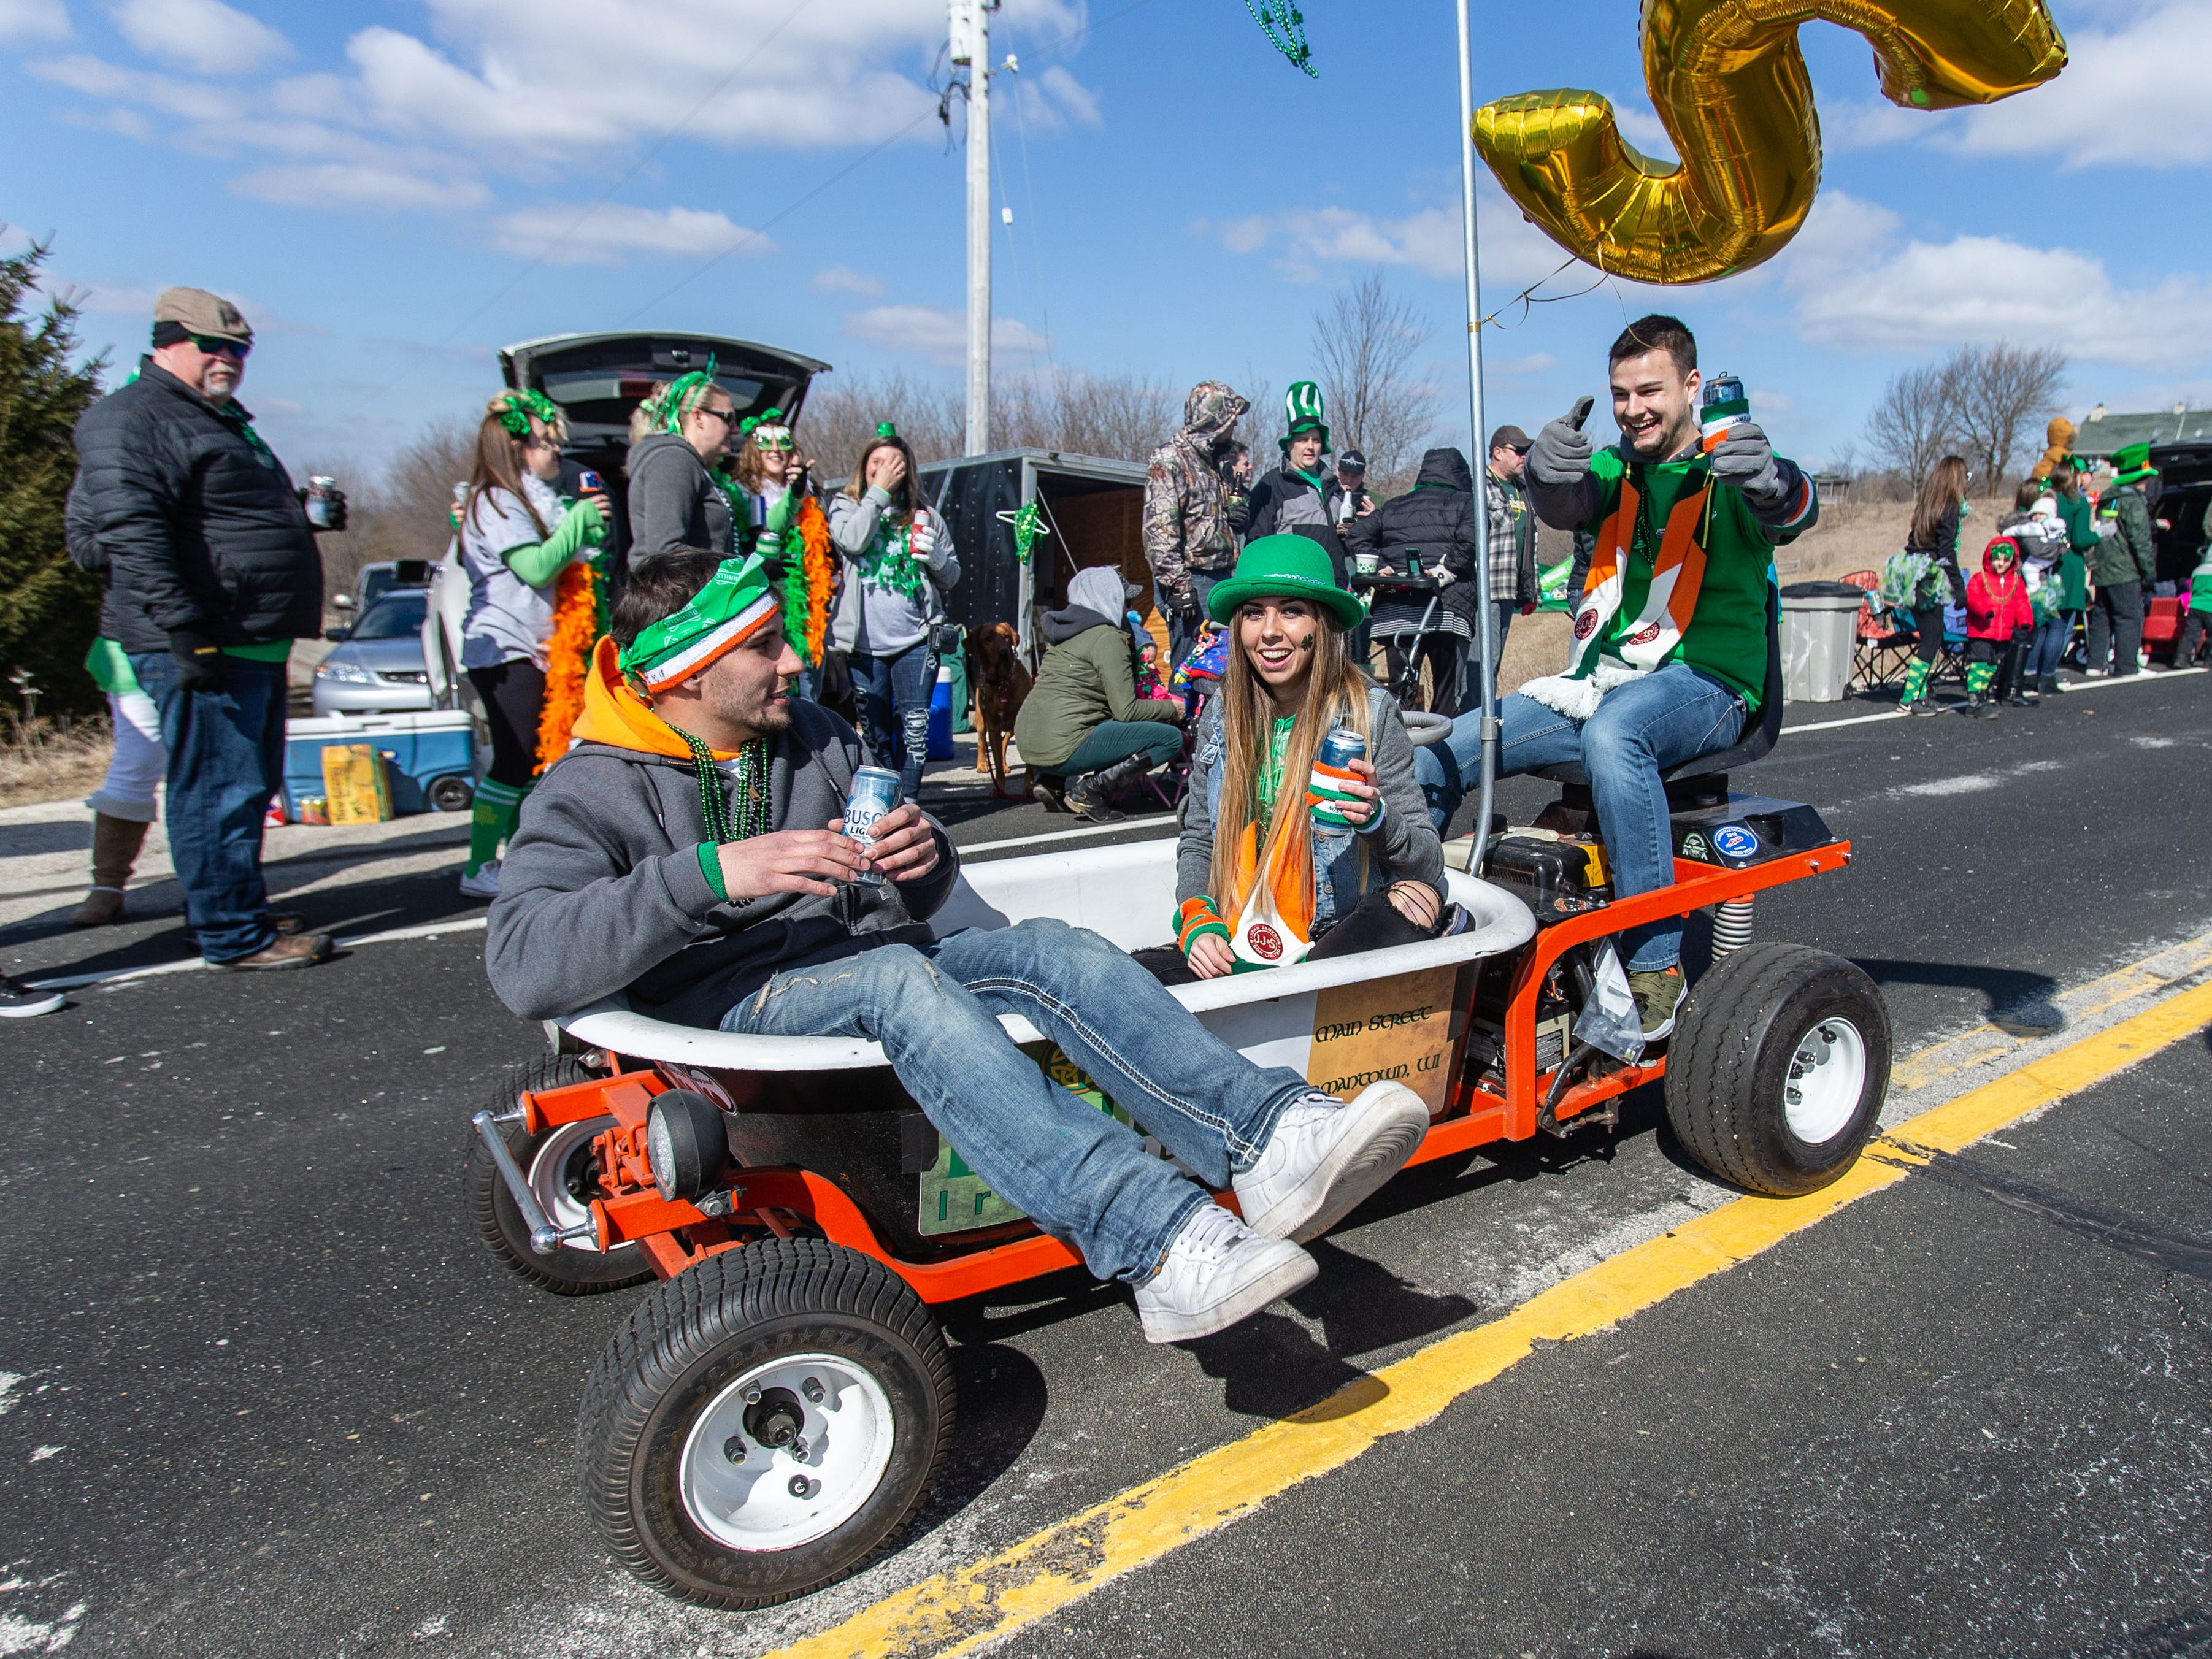 The always popular motorized bath tub from Bubs Irish Pub cruises past during the 39th annual Town of Erin St. Patrick's Day Parade on Sunday, March 17, 2019.